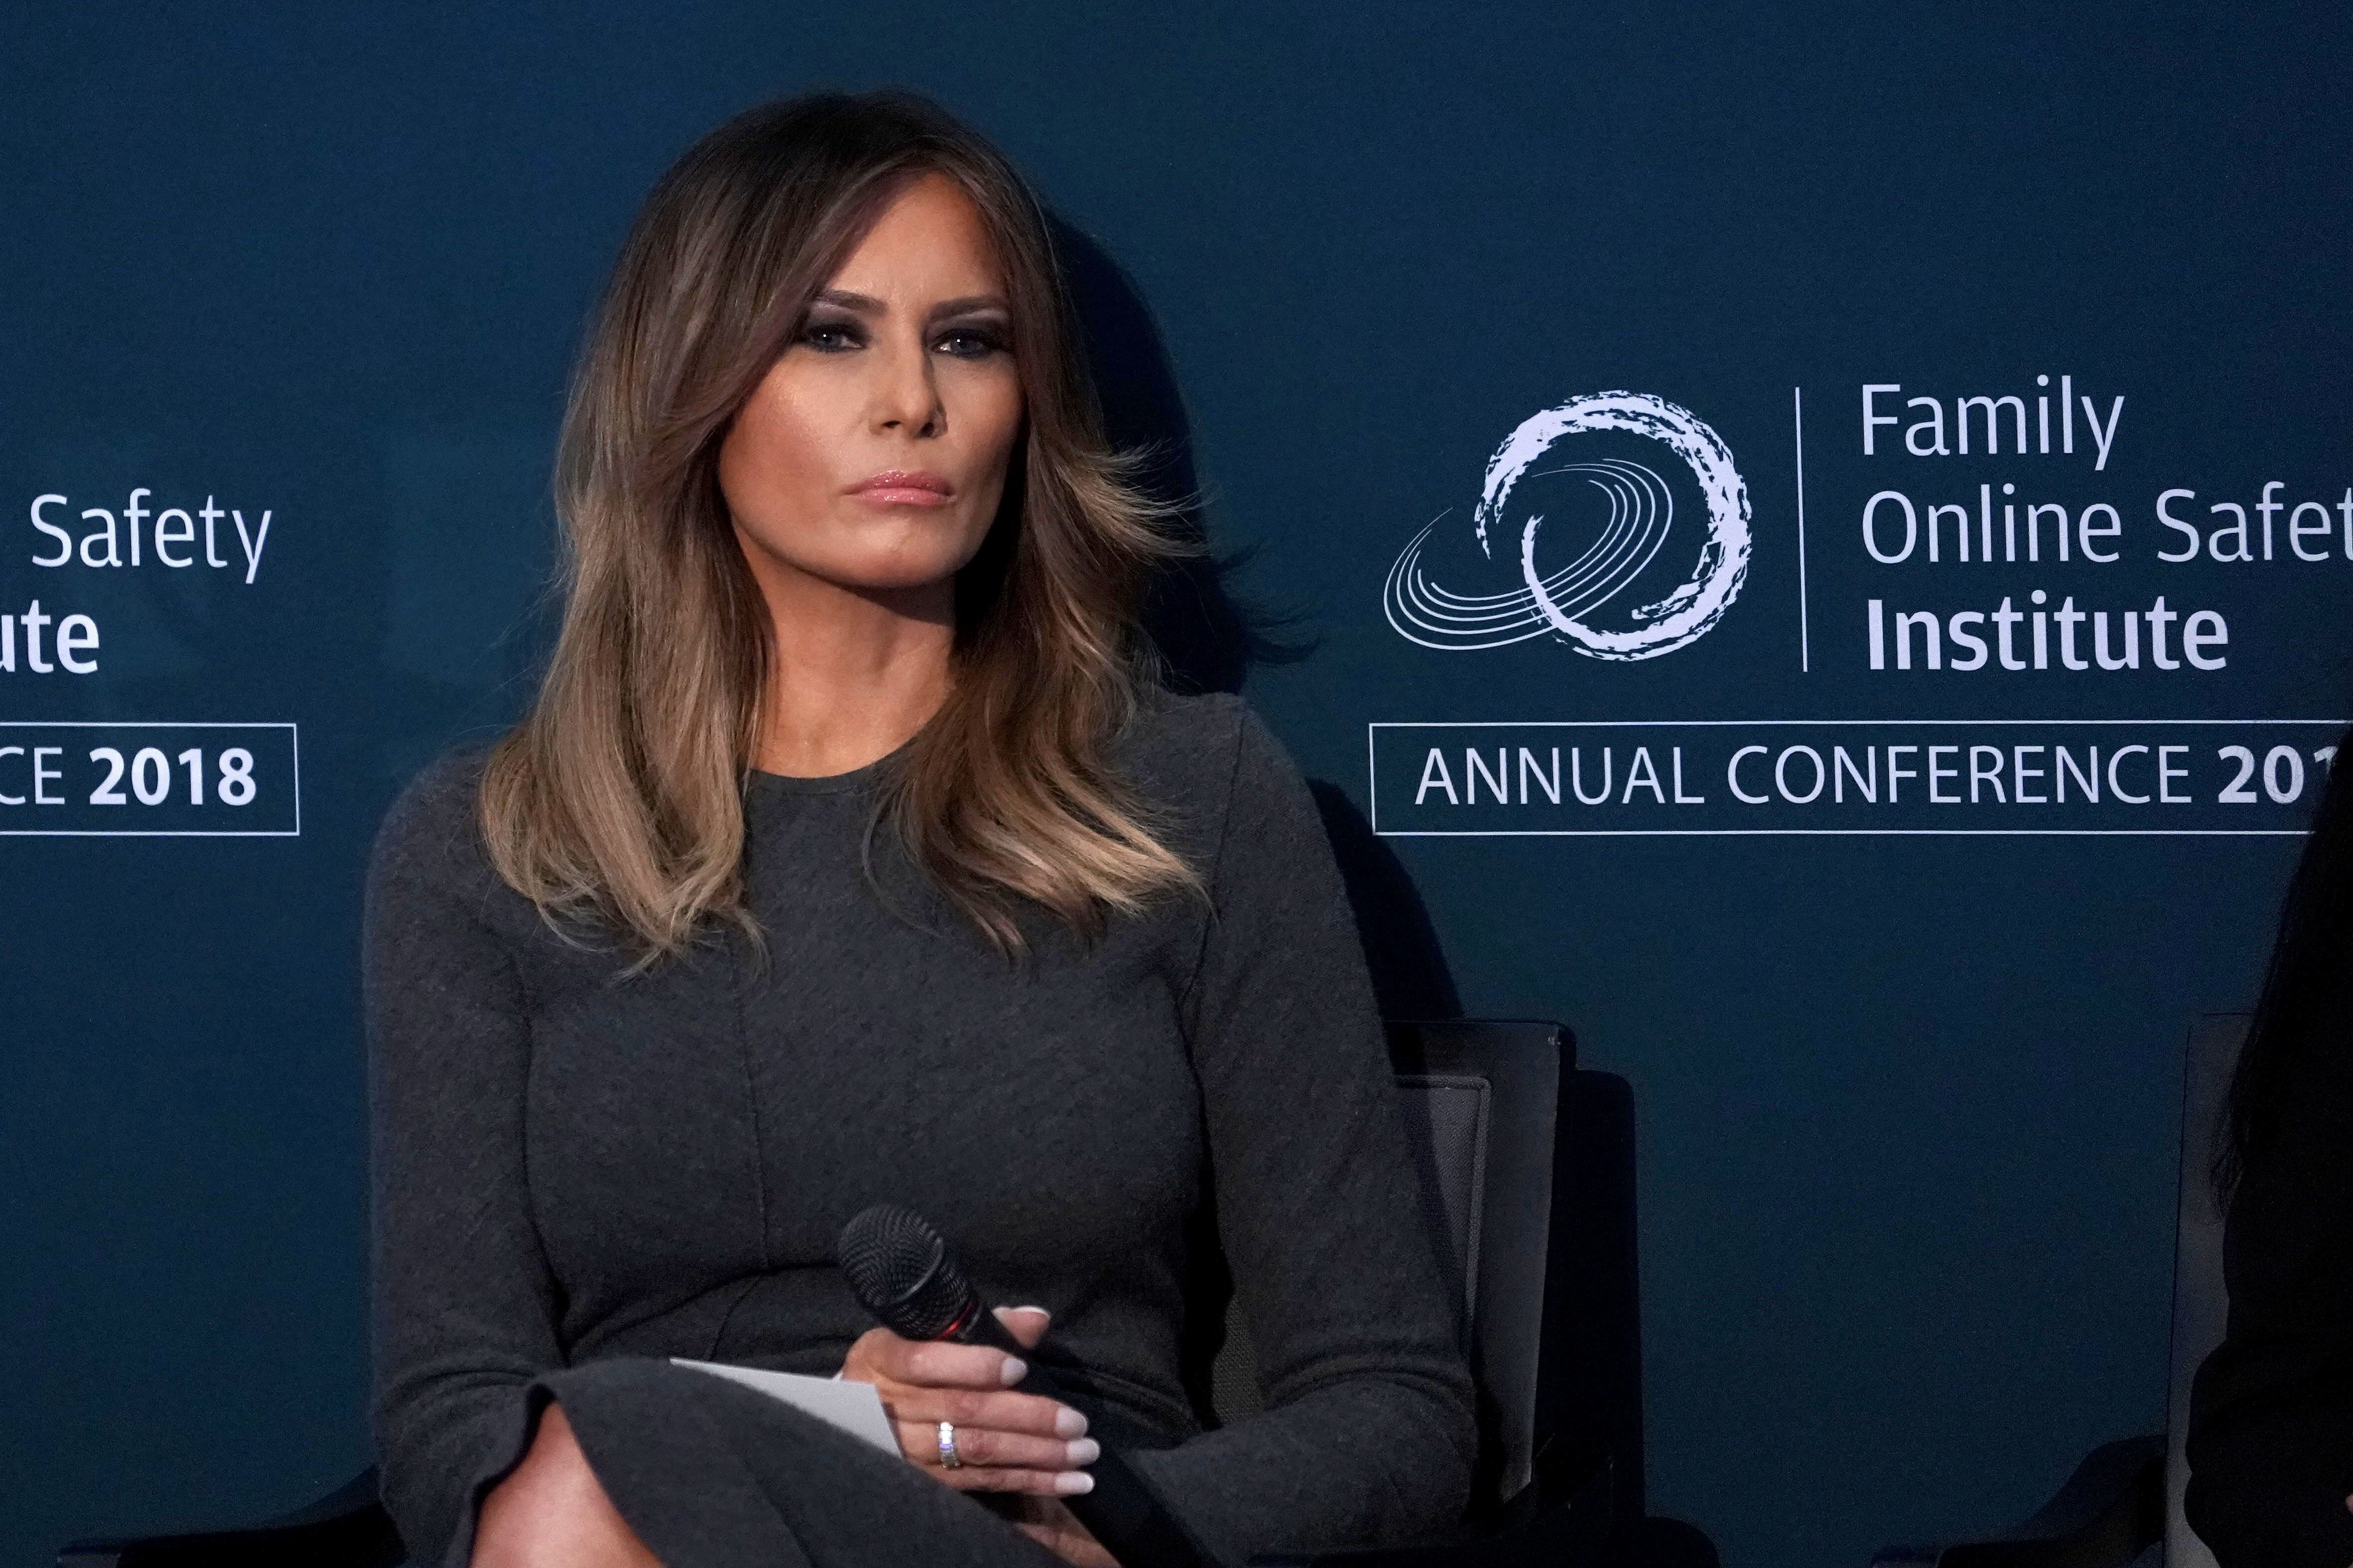 WASHINGTON, DC - NOVEMBER 15:  First lady Melania Trump listens during the annual conference of Family Online Safety Institute November 15, 2018 at the U.S. Institute of Peace in Washington, DC. The first lady participated in a discussion to end cyberbullying and promote civility online.   (Photo by Alex Wong/Getty Images)